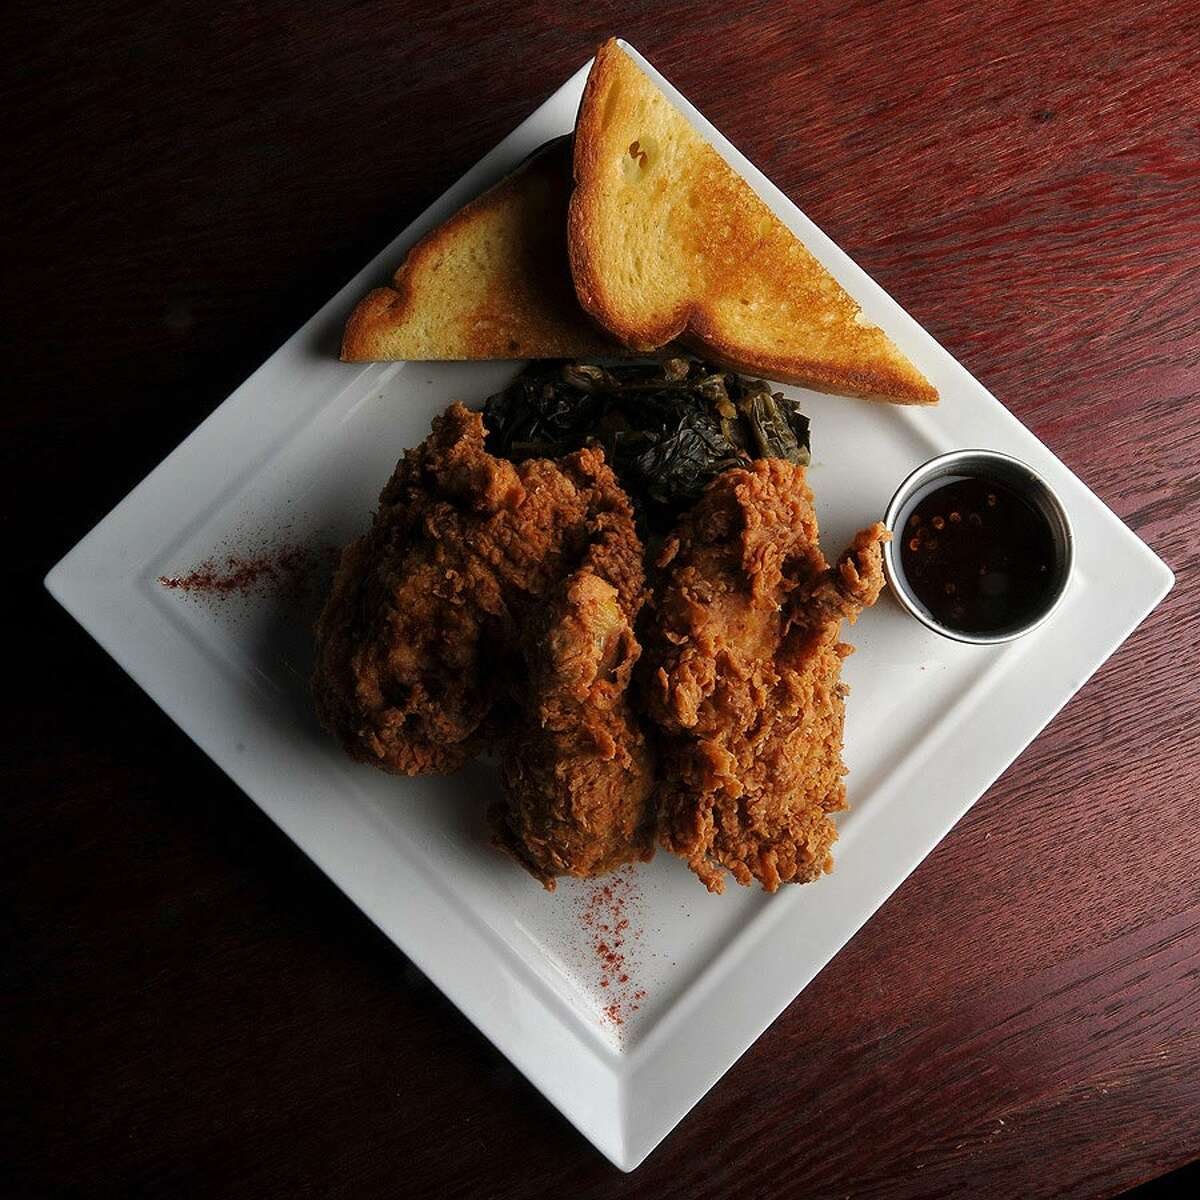 Readers and Express-News critics chose Max's Wine Bar as Best Fried Chicken. ROBIN JERSTAD / SPECIAL TO THE EXPRESS-NEWS